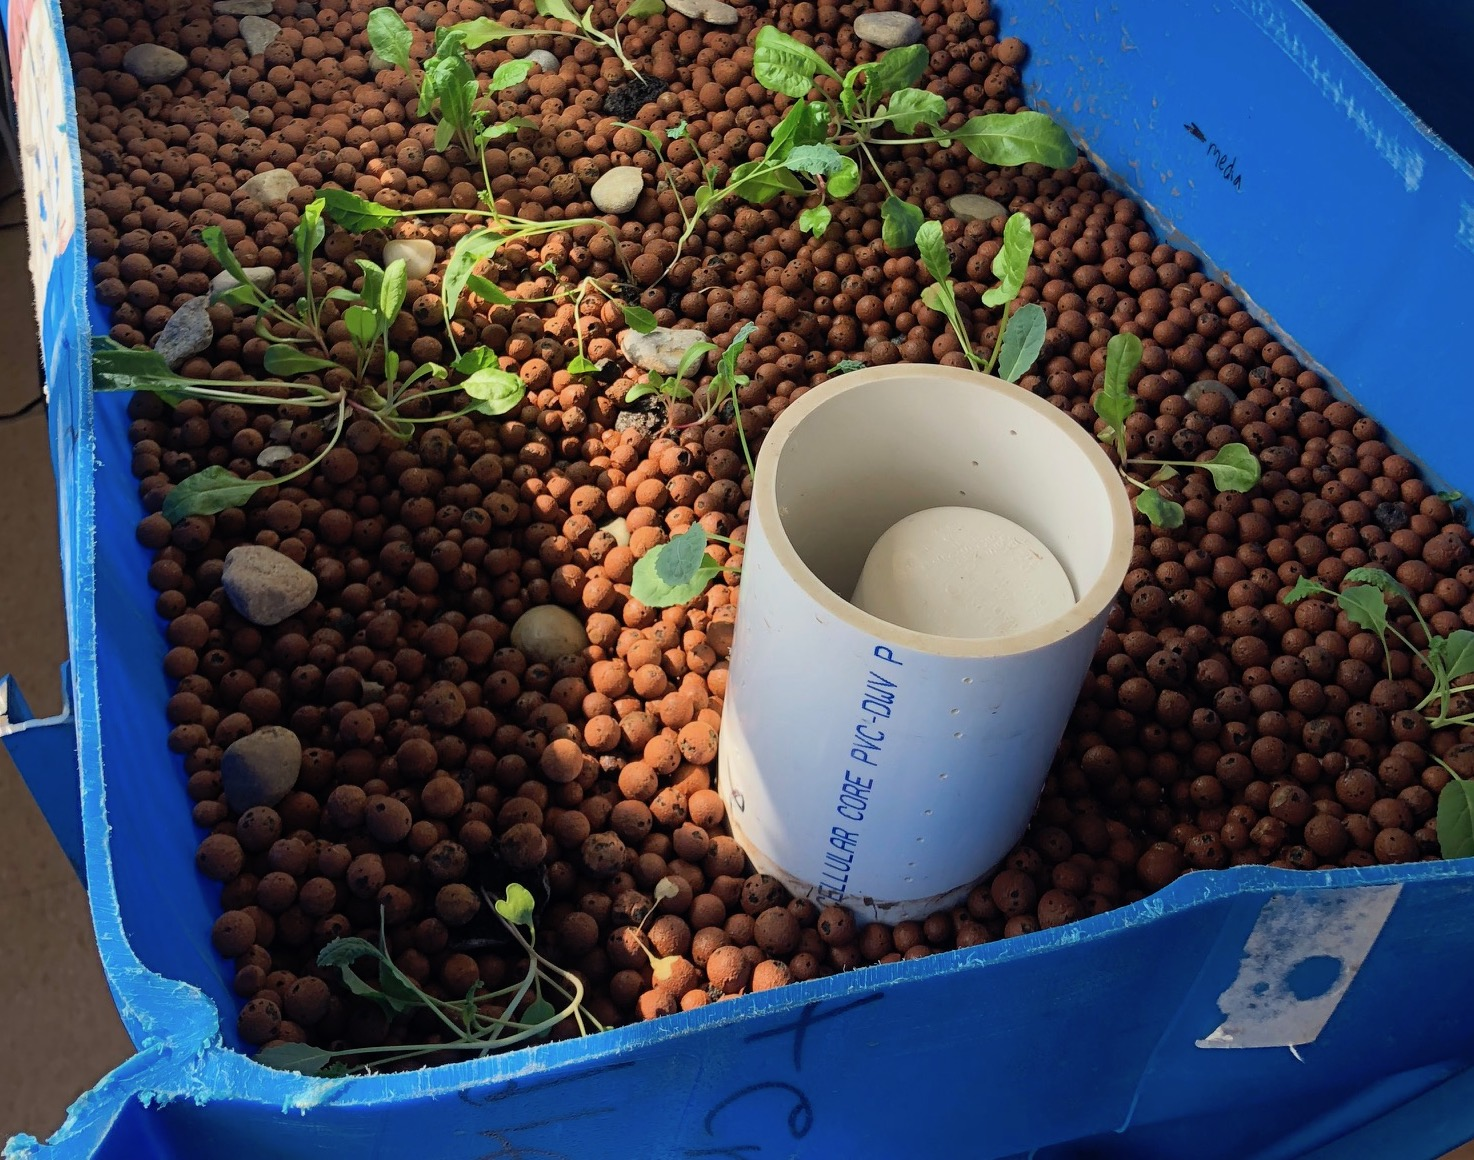 Brown pebbles in a modified blue plastic tank with small plants growing it it, plus pipes and tubes.